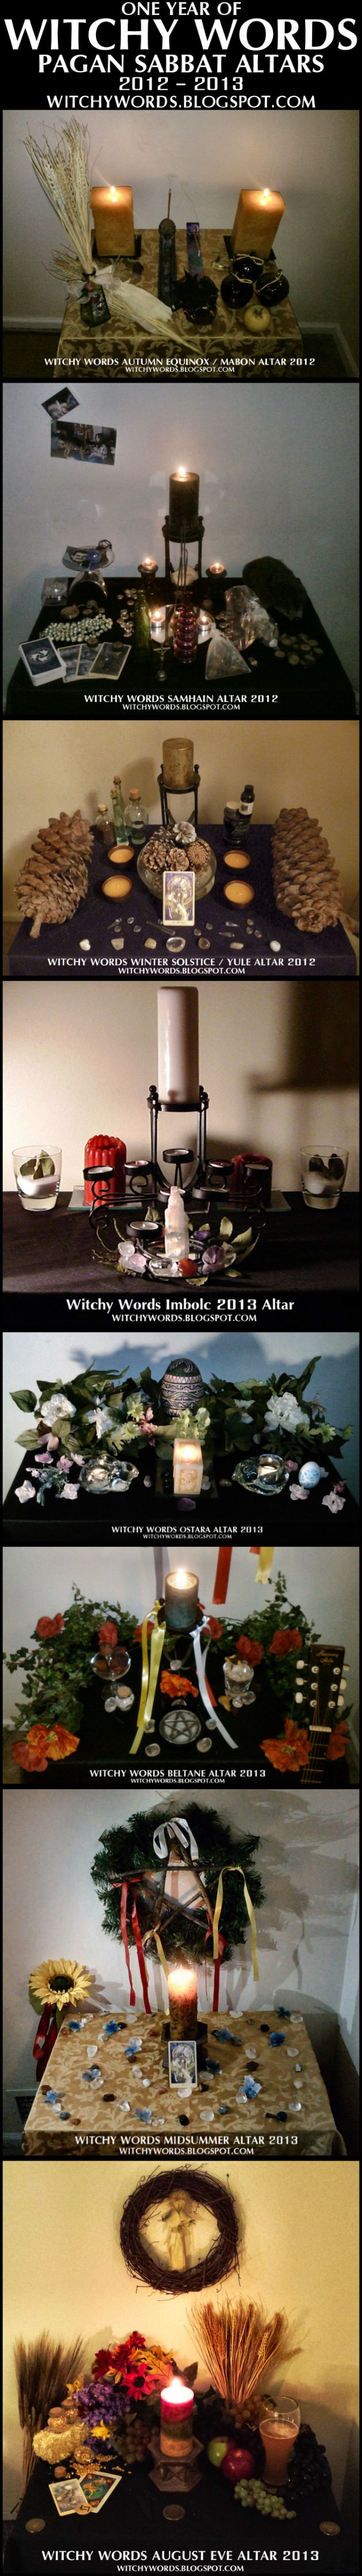 Witchy Words: One Year of Pagan Sabbat Altars #pagan #wicca #witch